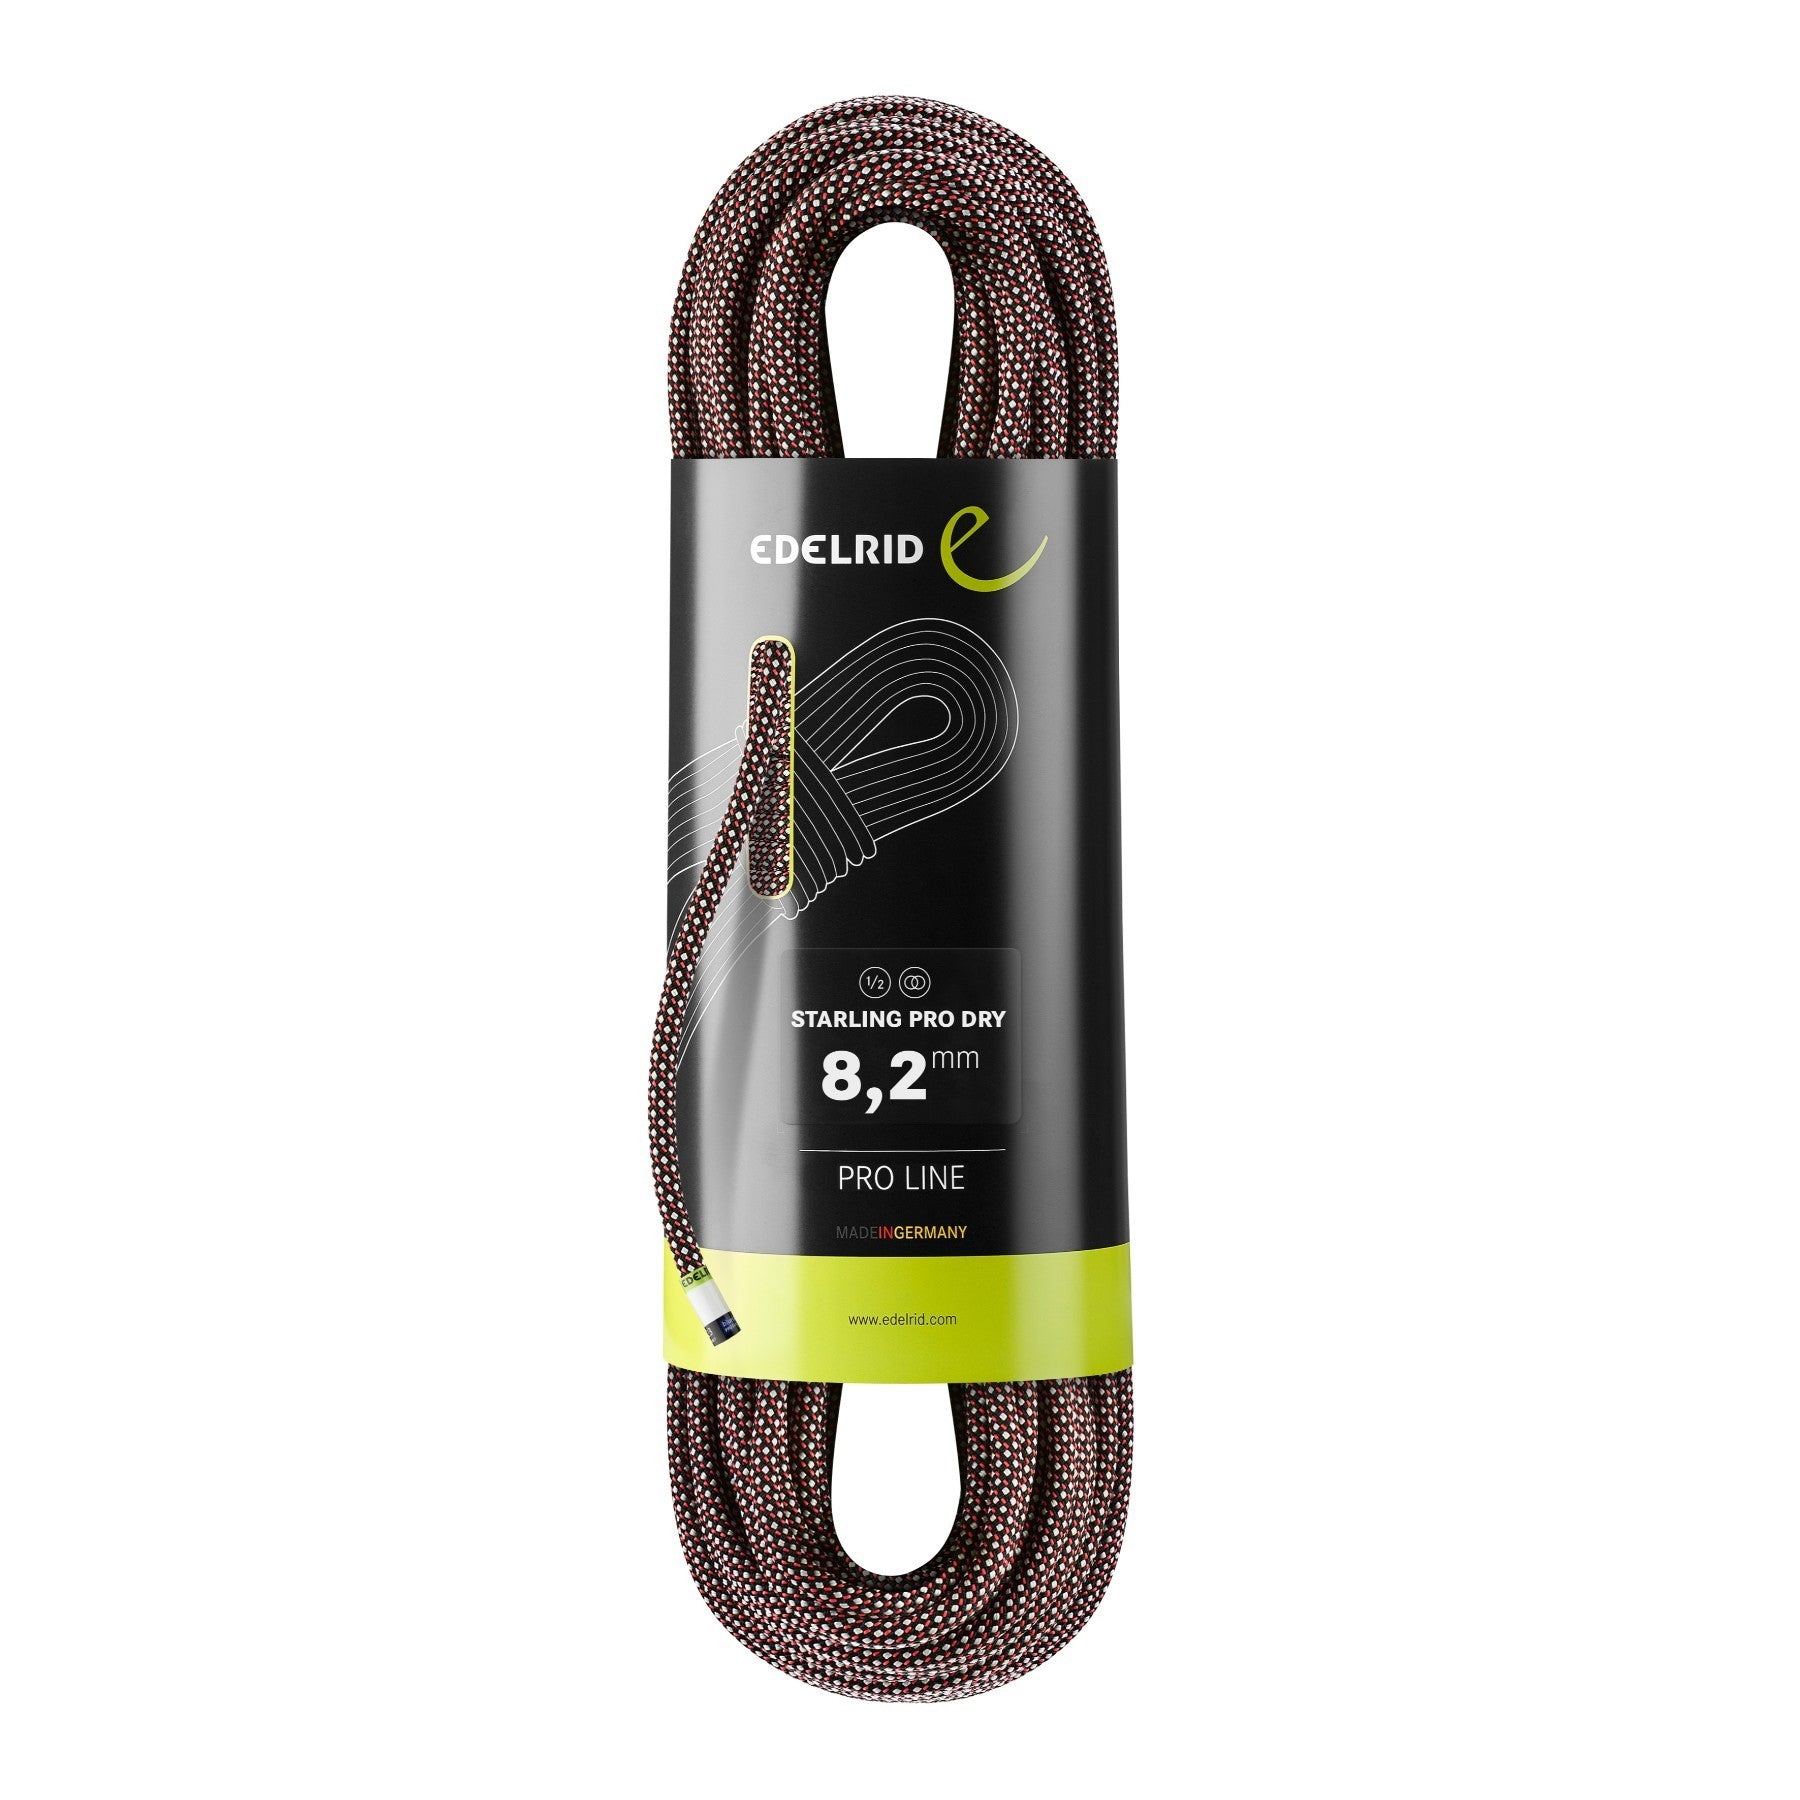 Edelrid Starling Pro Dry 8.2mm x 50m, Night